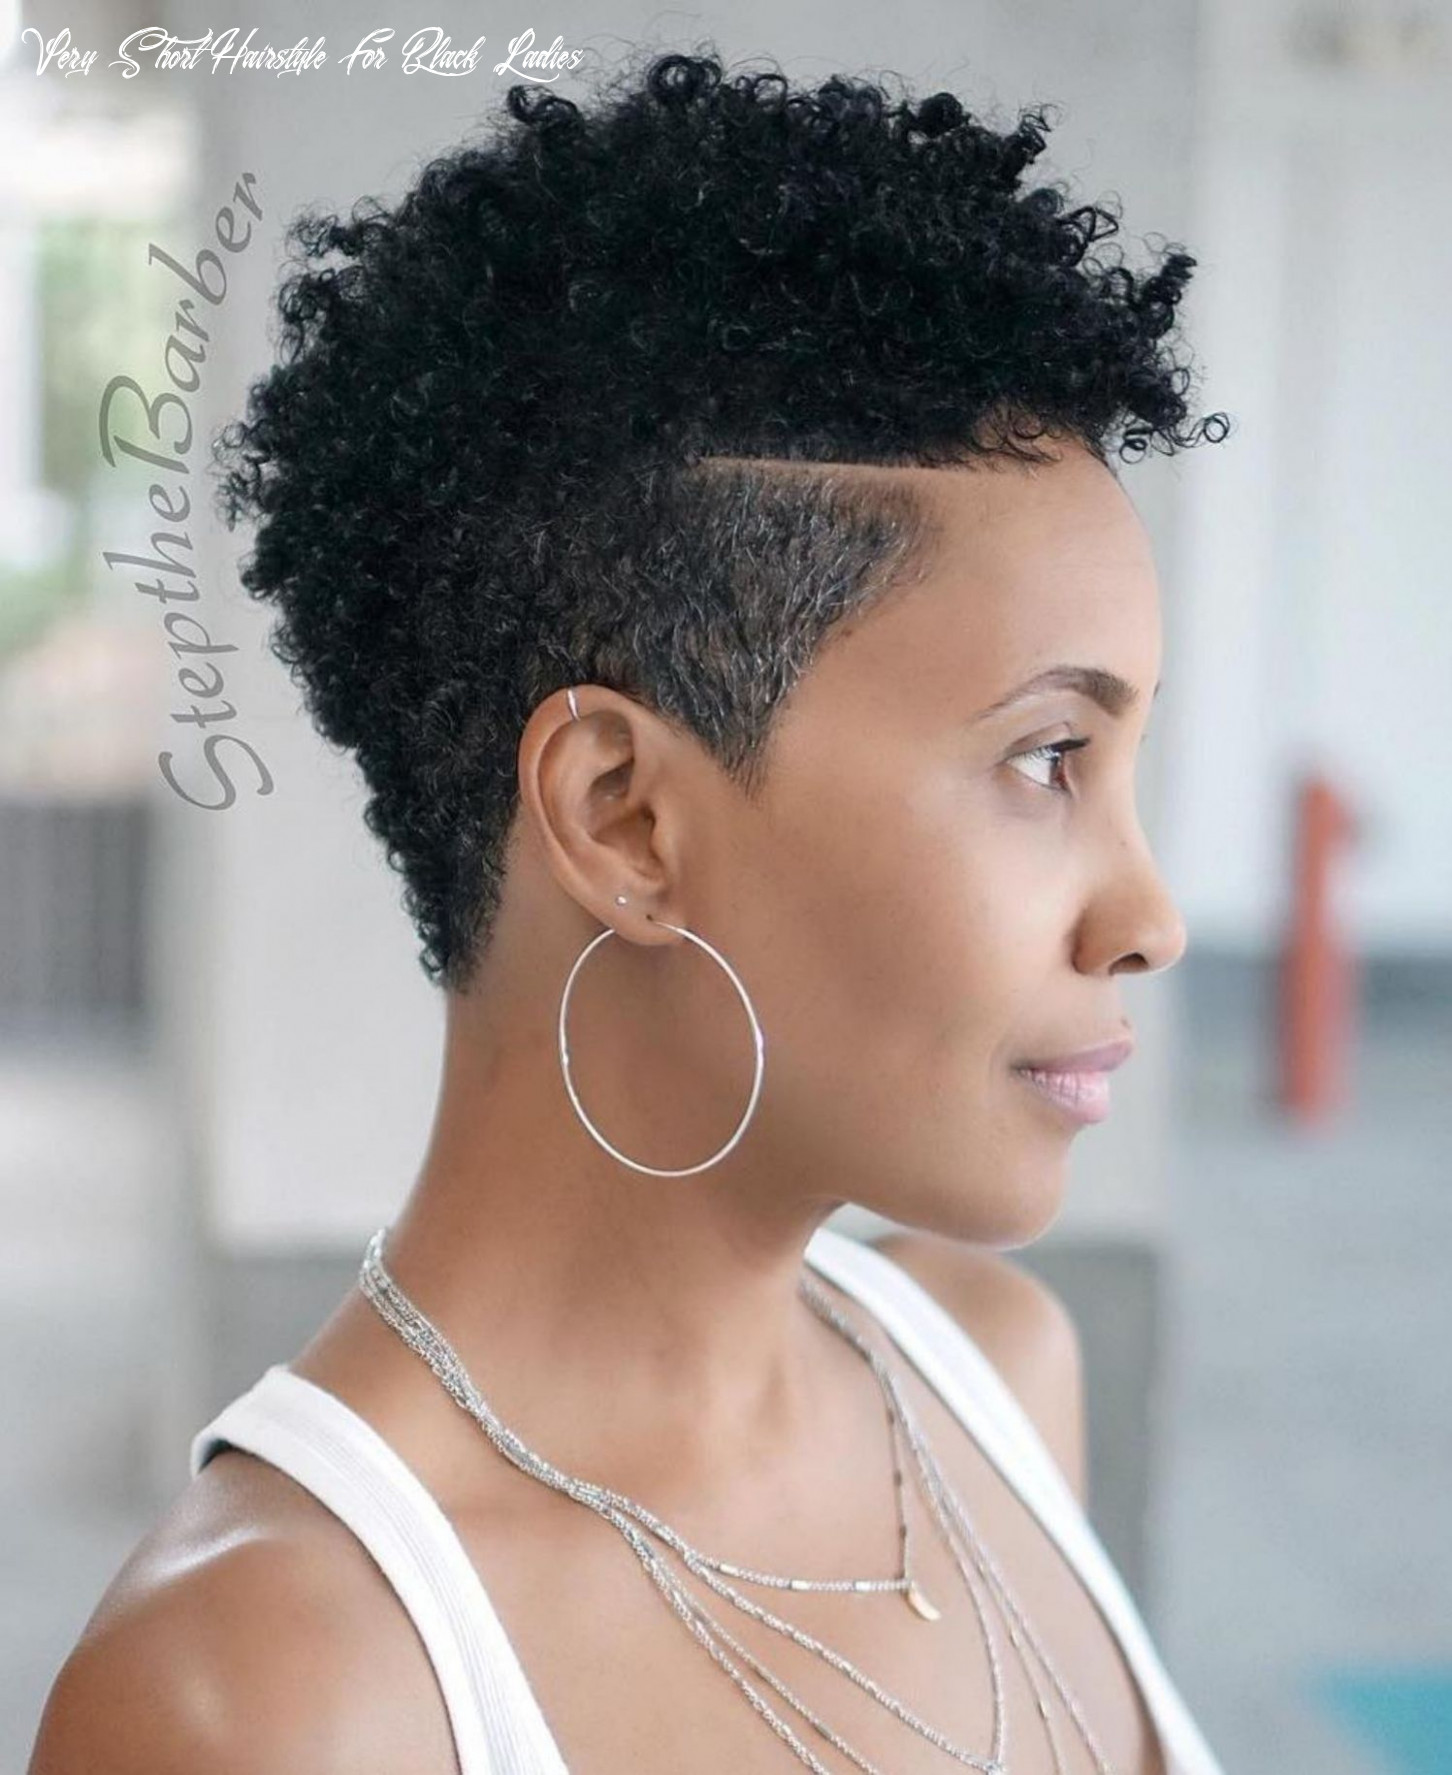 12 great short hairstyles for black women | natural hair styles